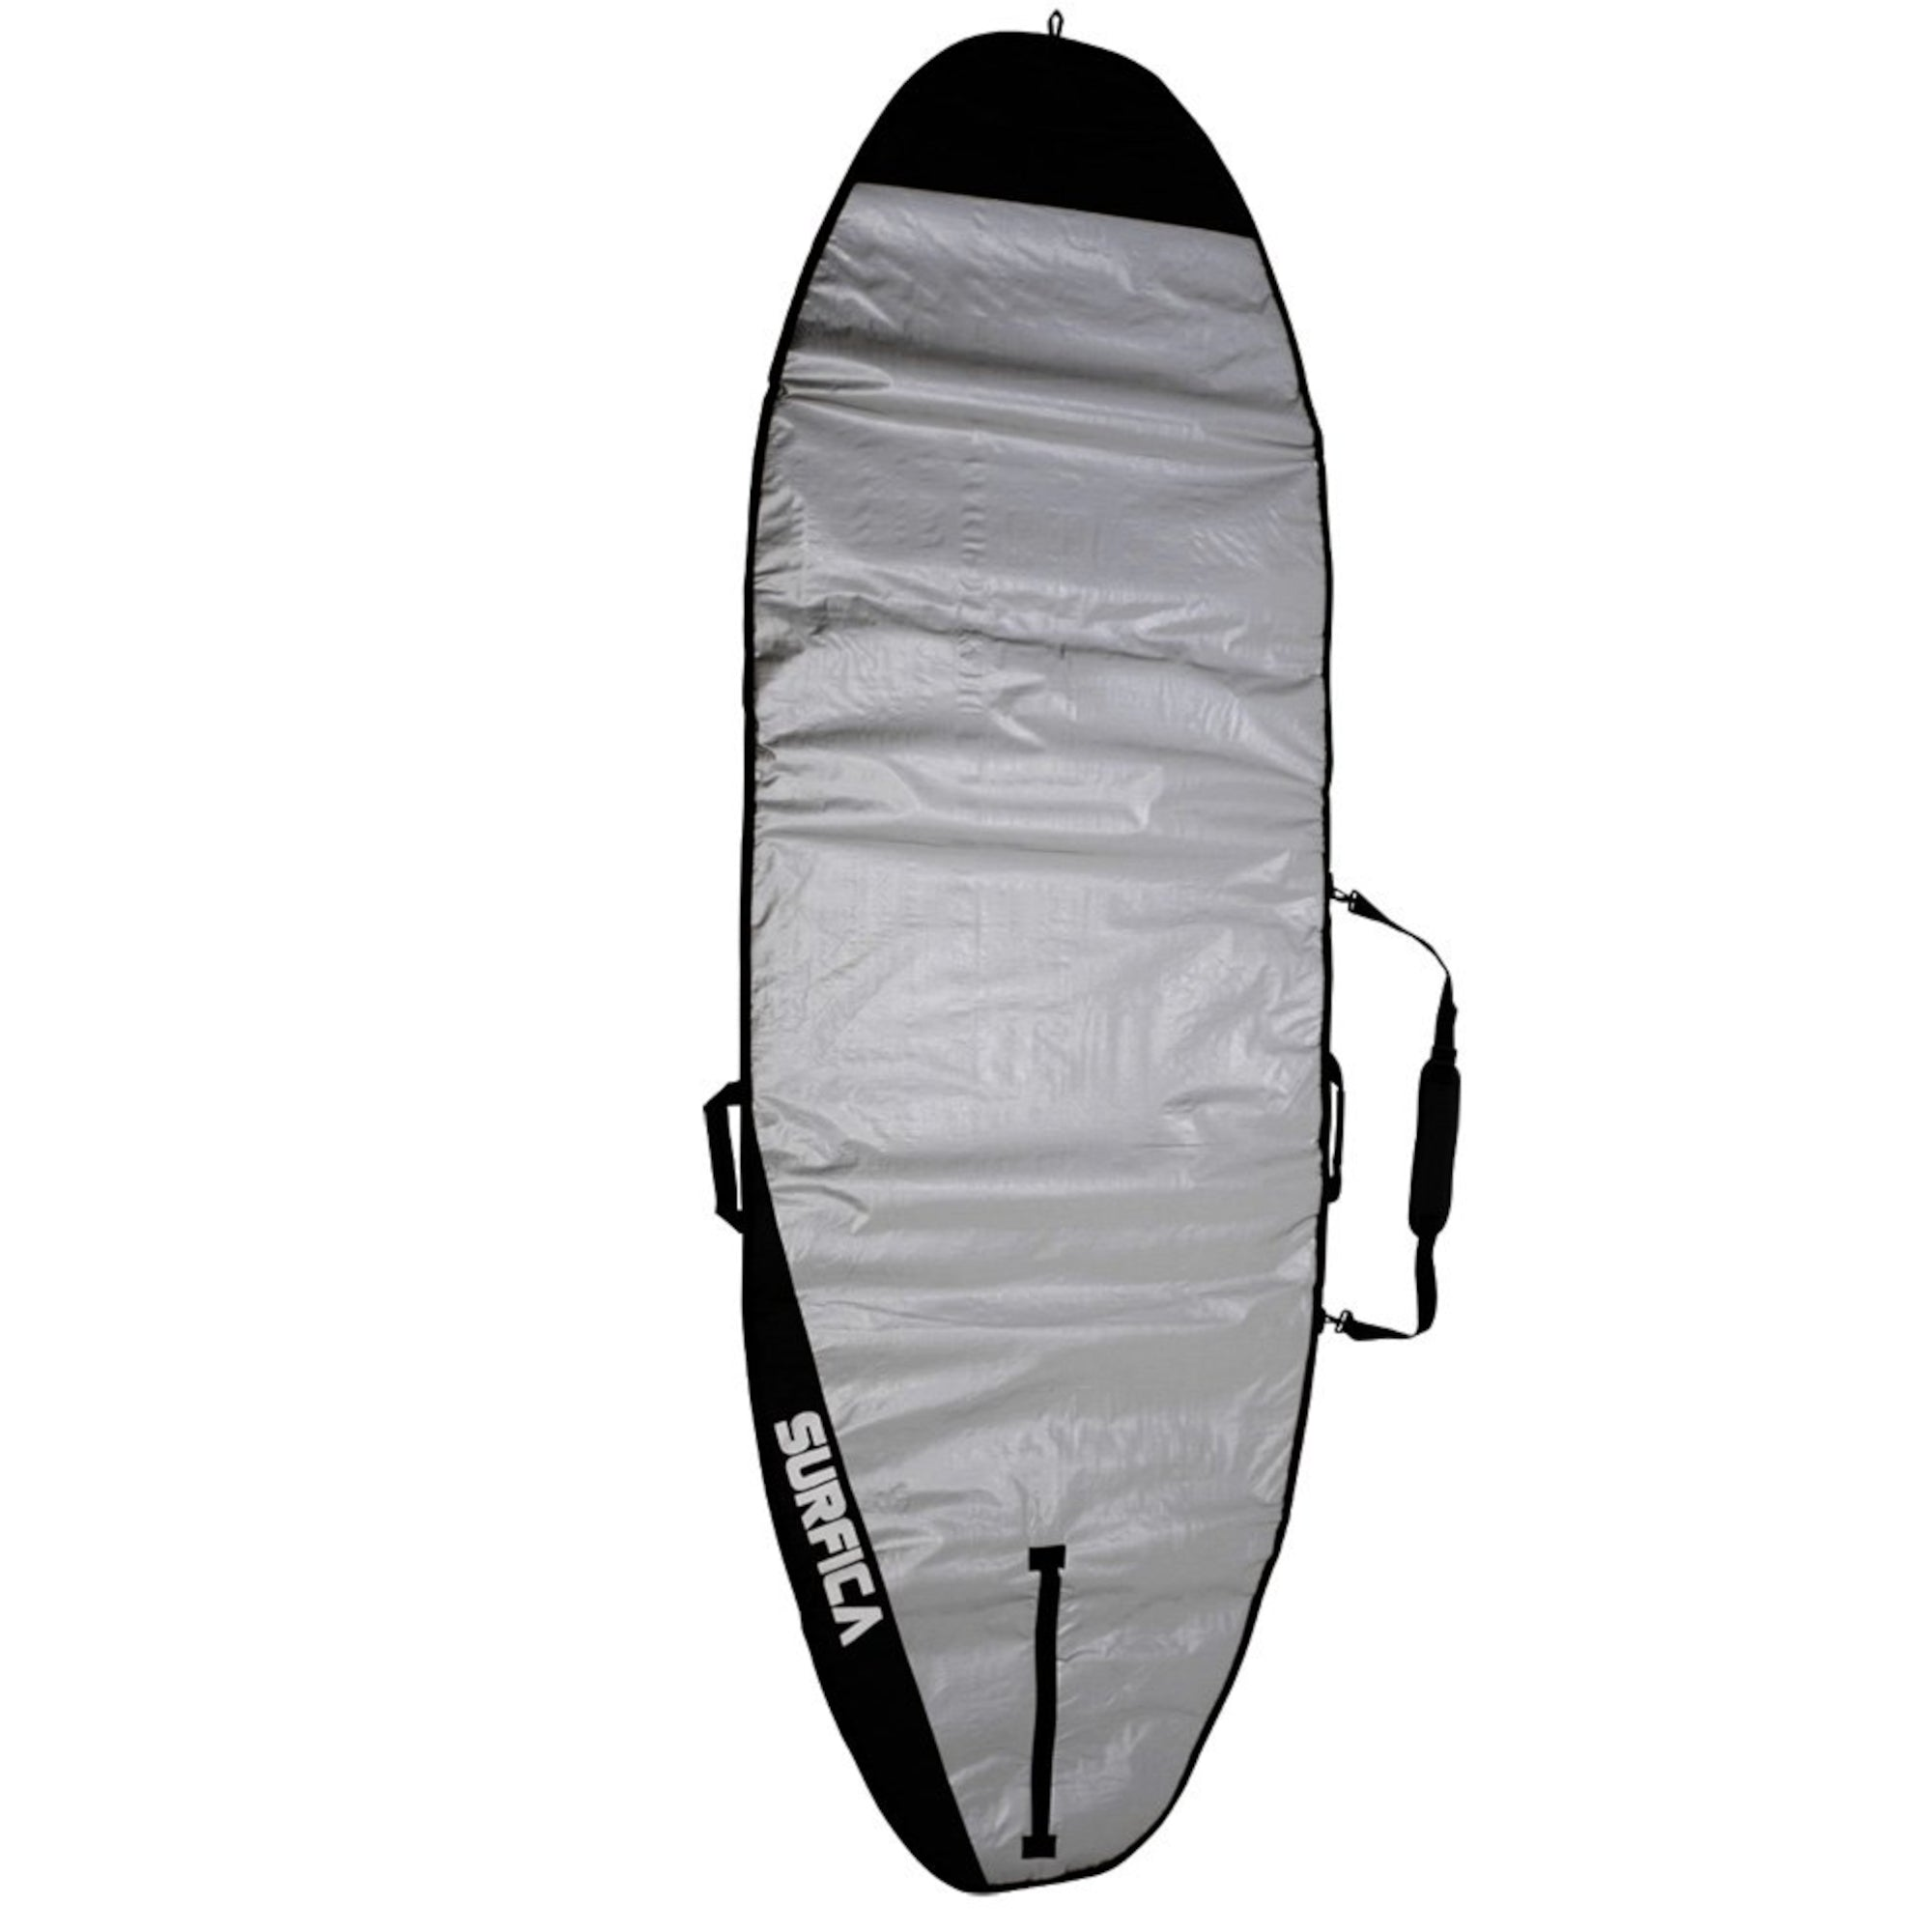 Surfica Surfboard/SUP Board Bag